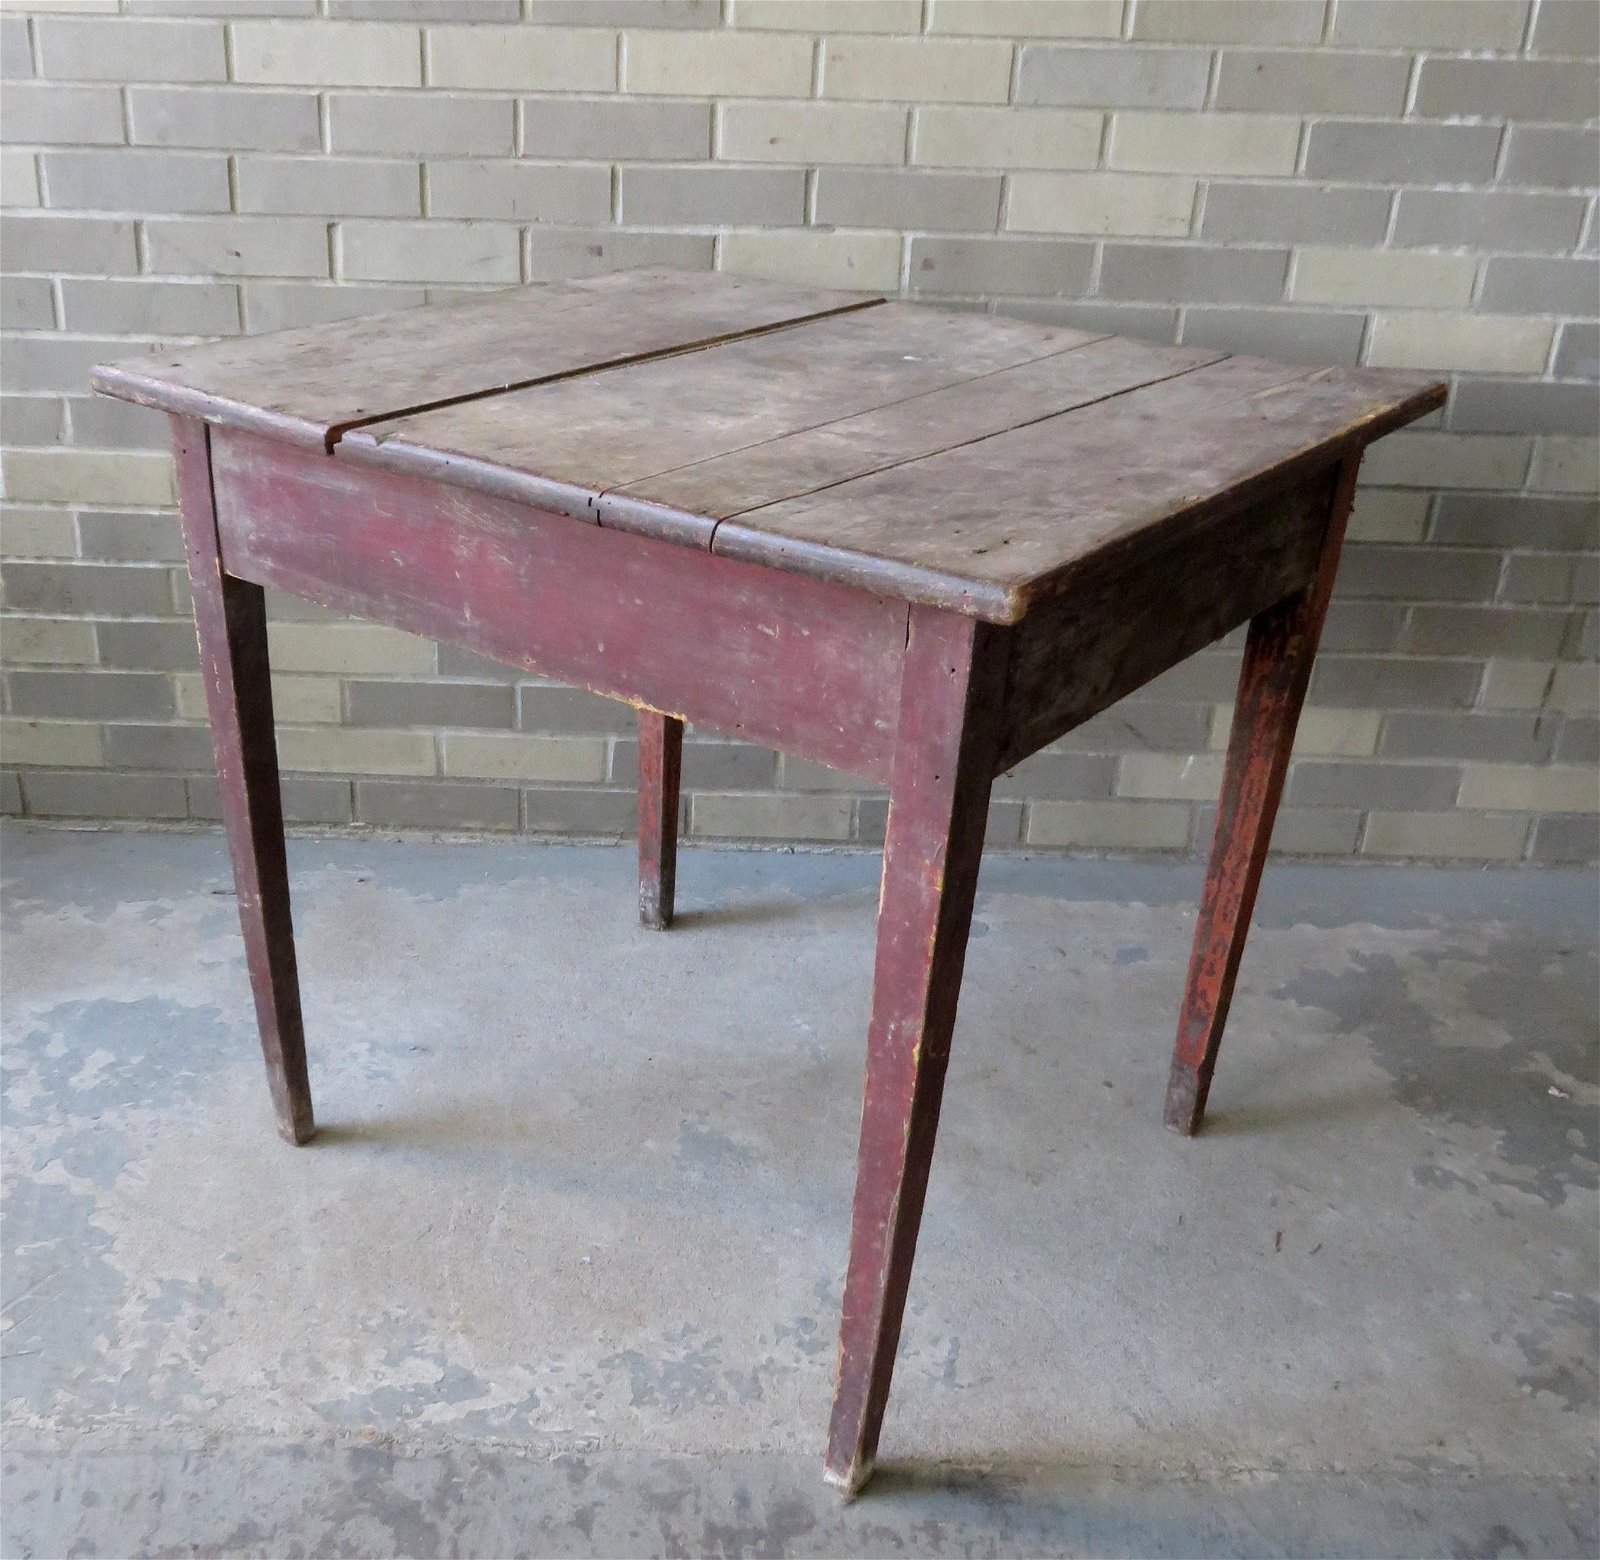 A primitive Hepplewhite tap table with tapered legs,